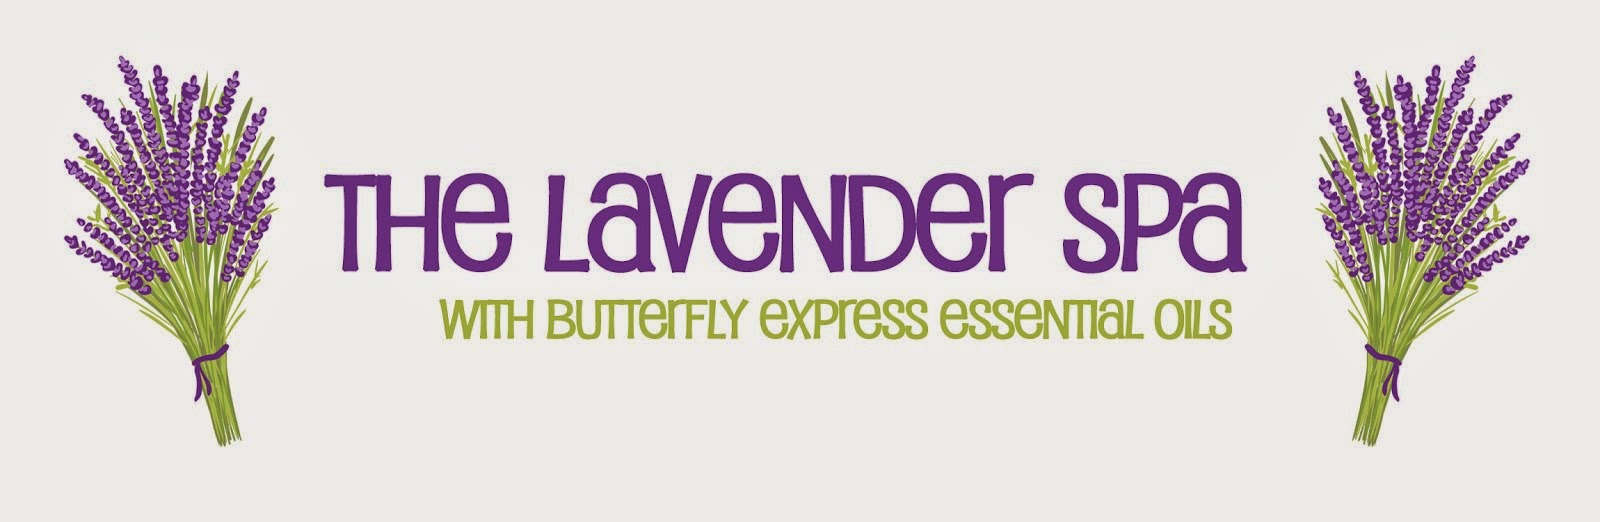 The Lavender Spa